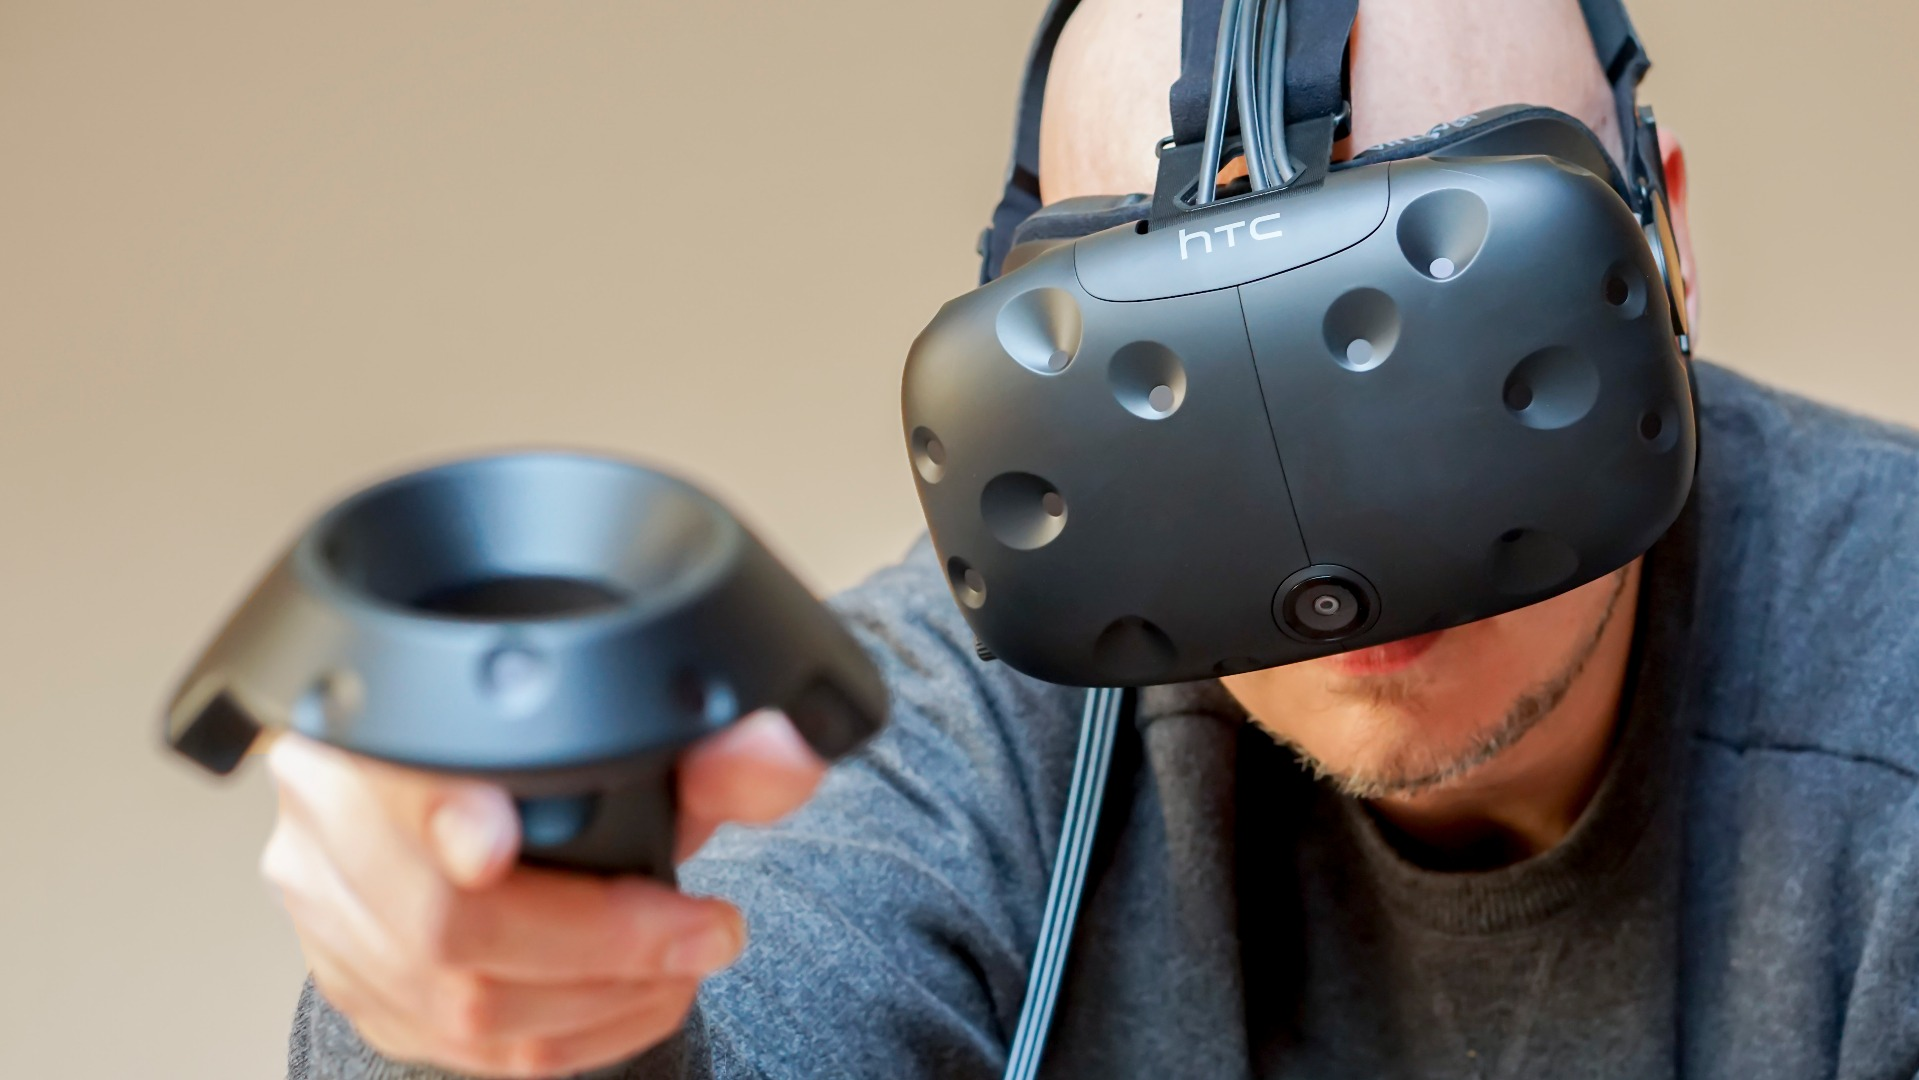 HTC Vive review: The best tracking in VR needs more great games